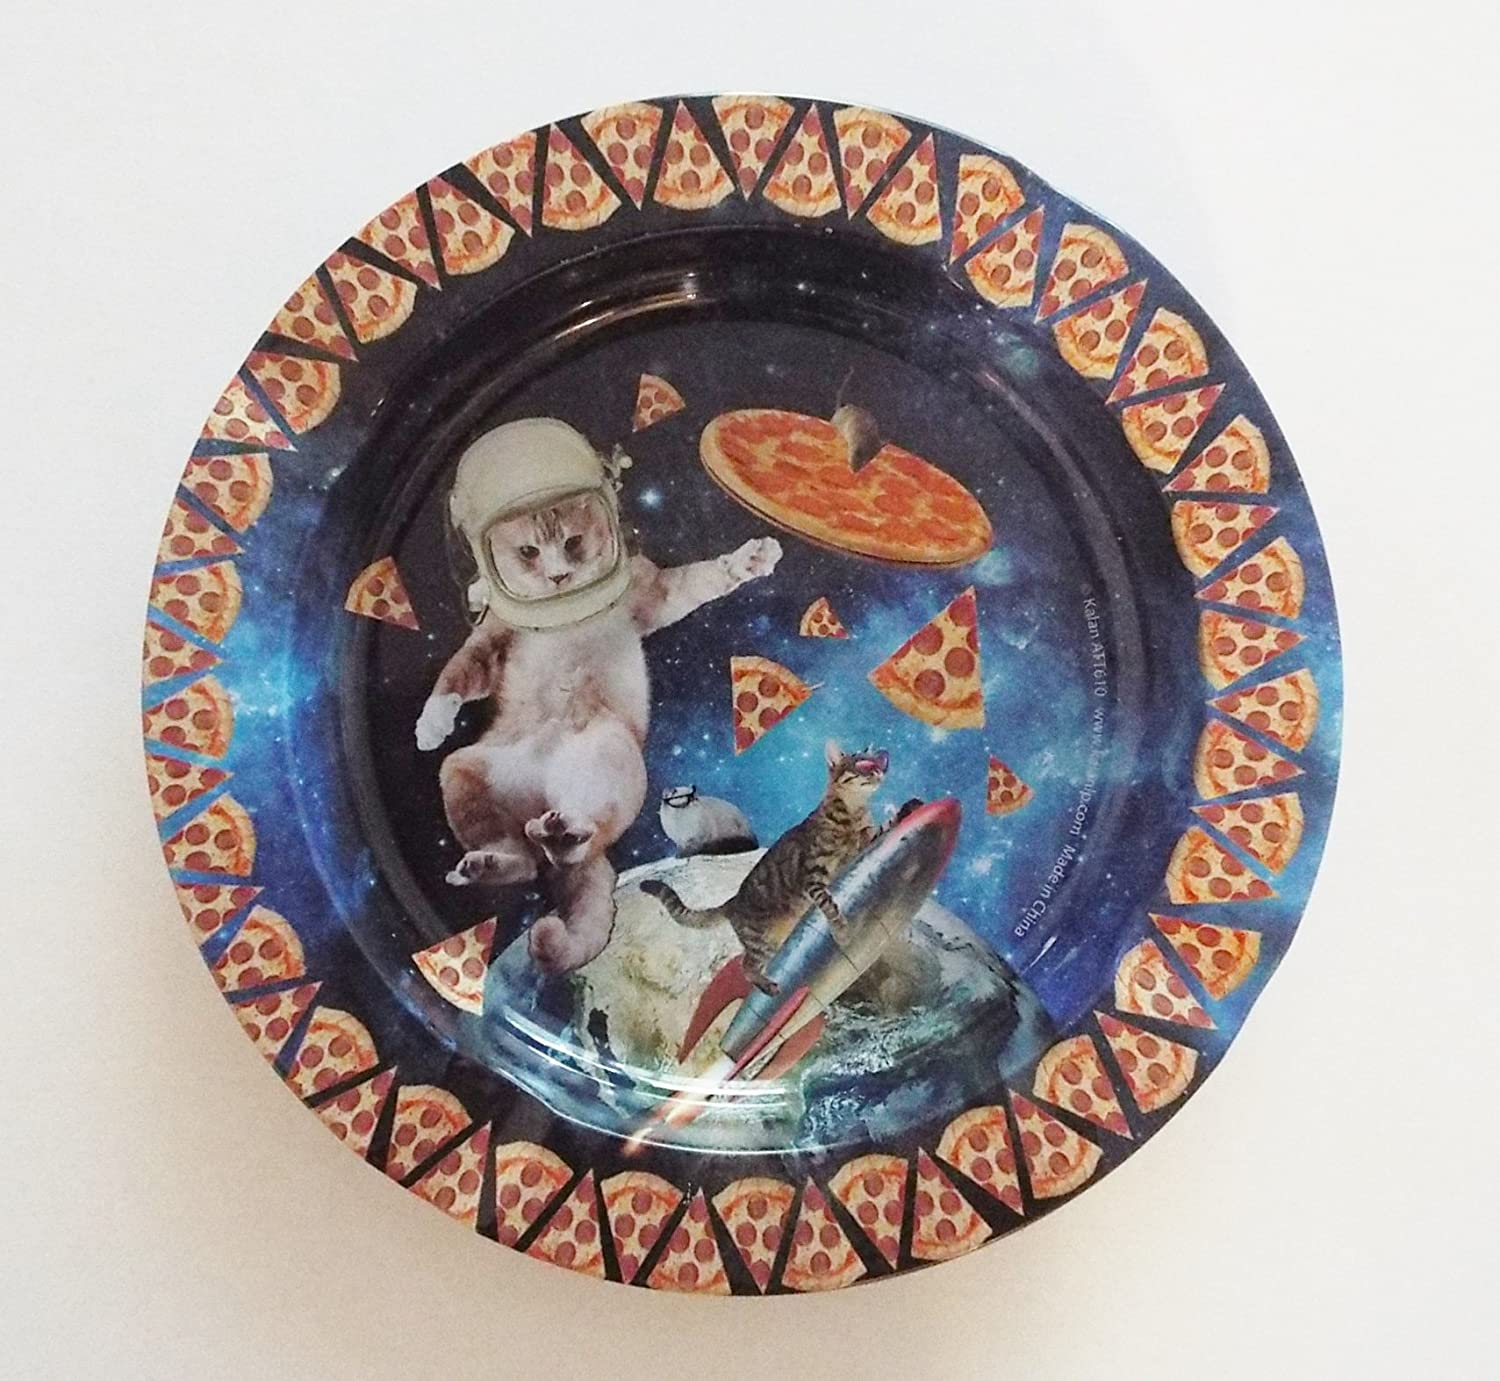 Cats and Pizza in Space Design -Tin Ashtray kalan